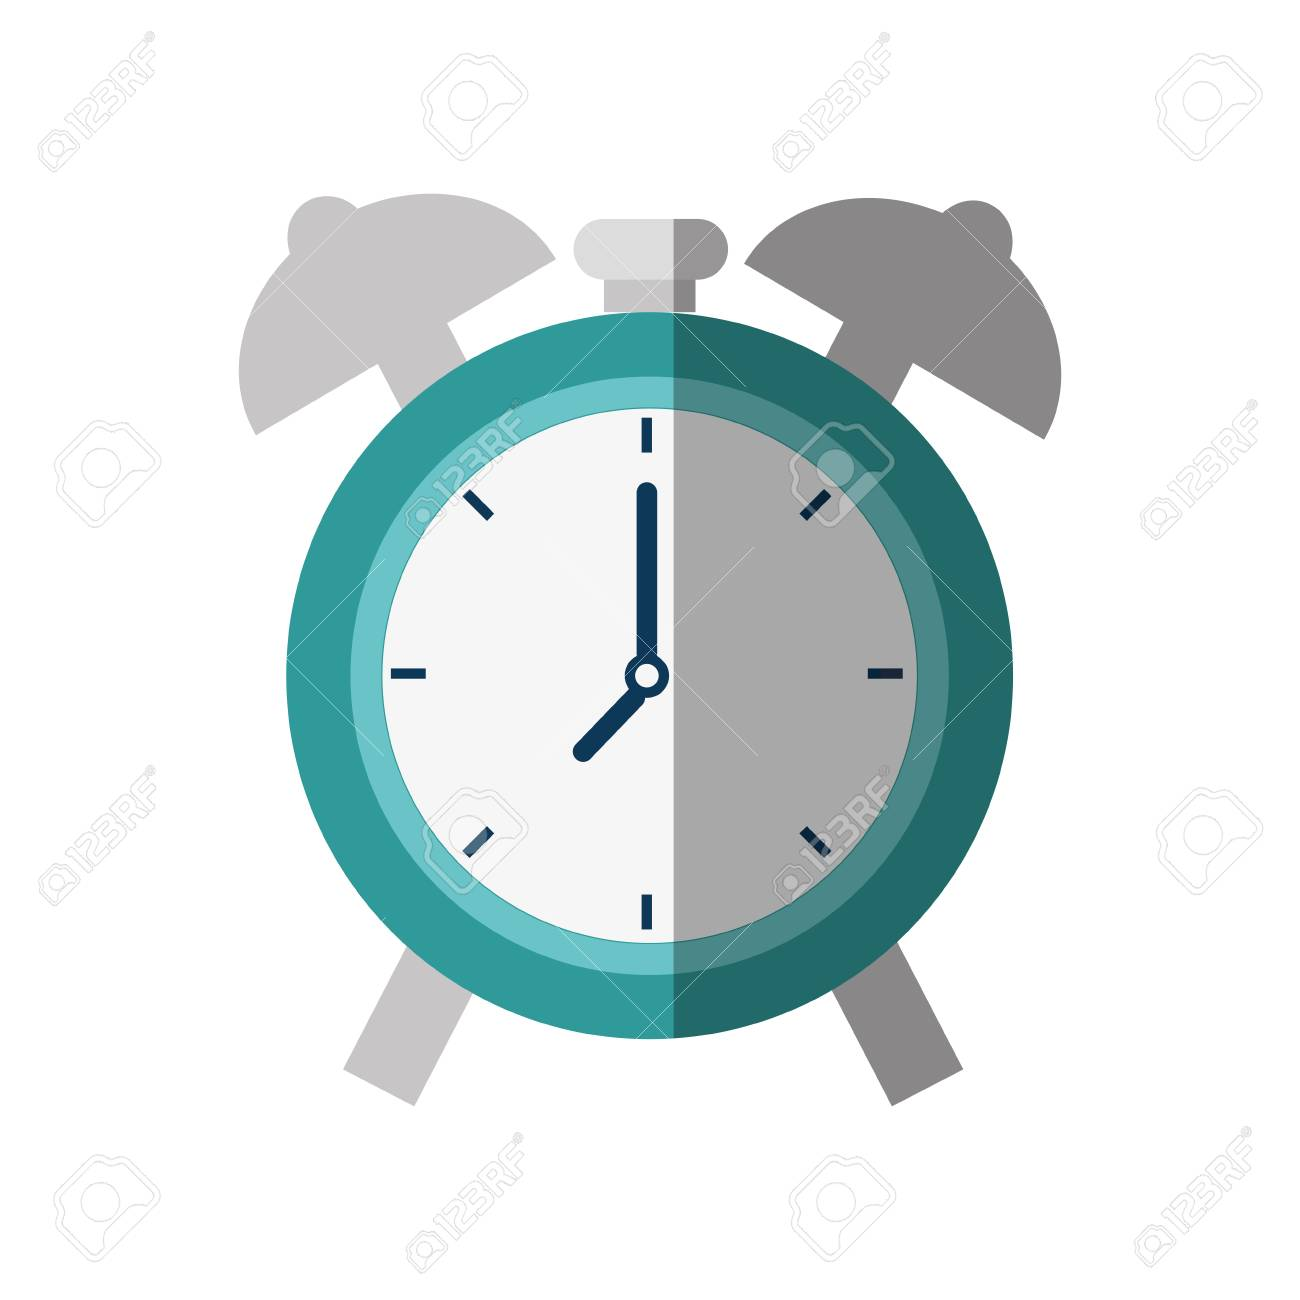 watch clock time icon vector ilustration symbol royalty free rh 123rf com watch victorious online watch victoria